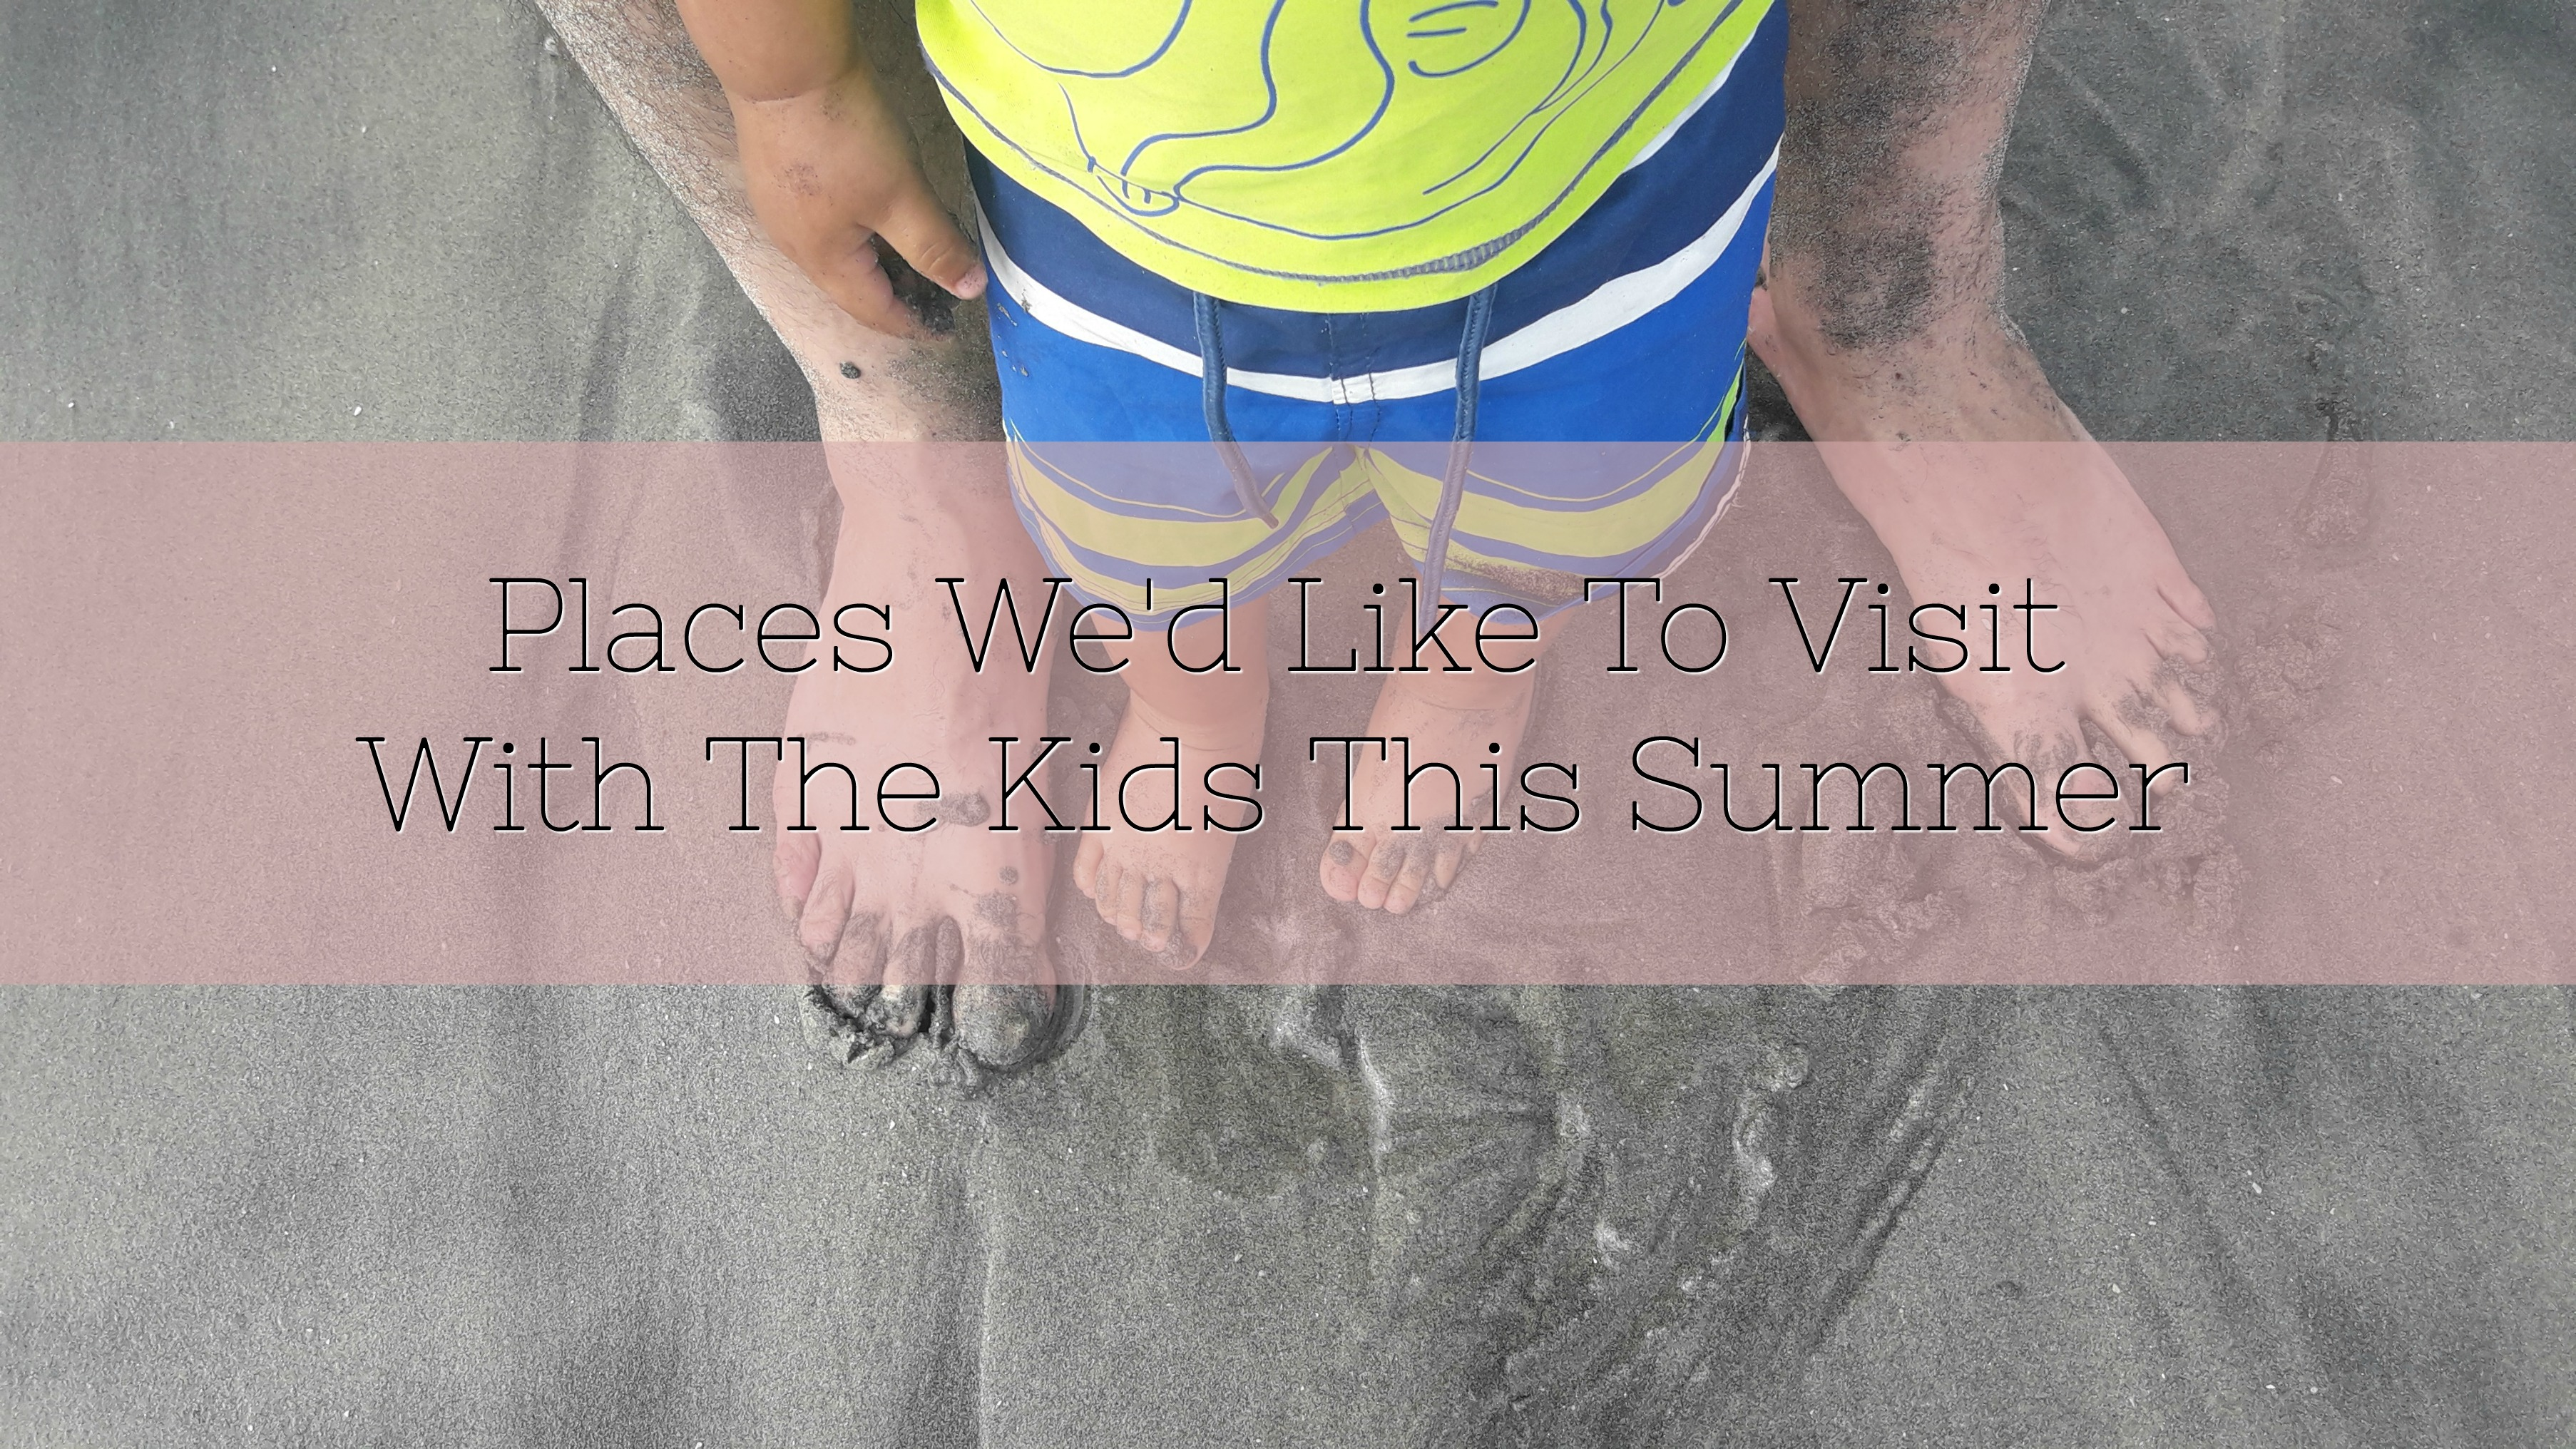 Places We'd Like To Visit With The Kids This Summer title